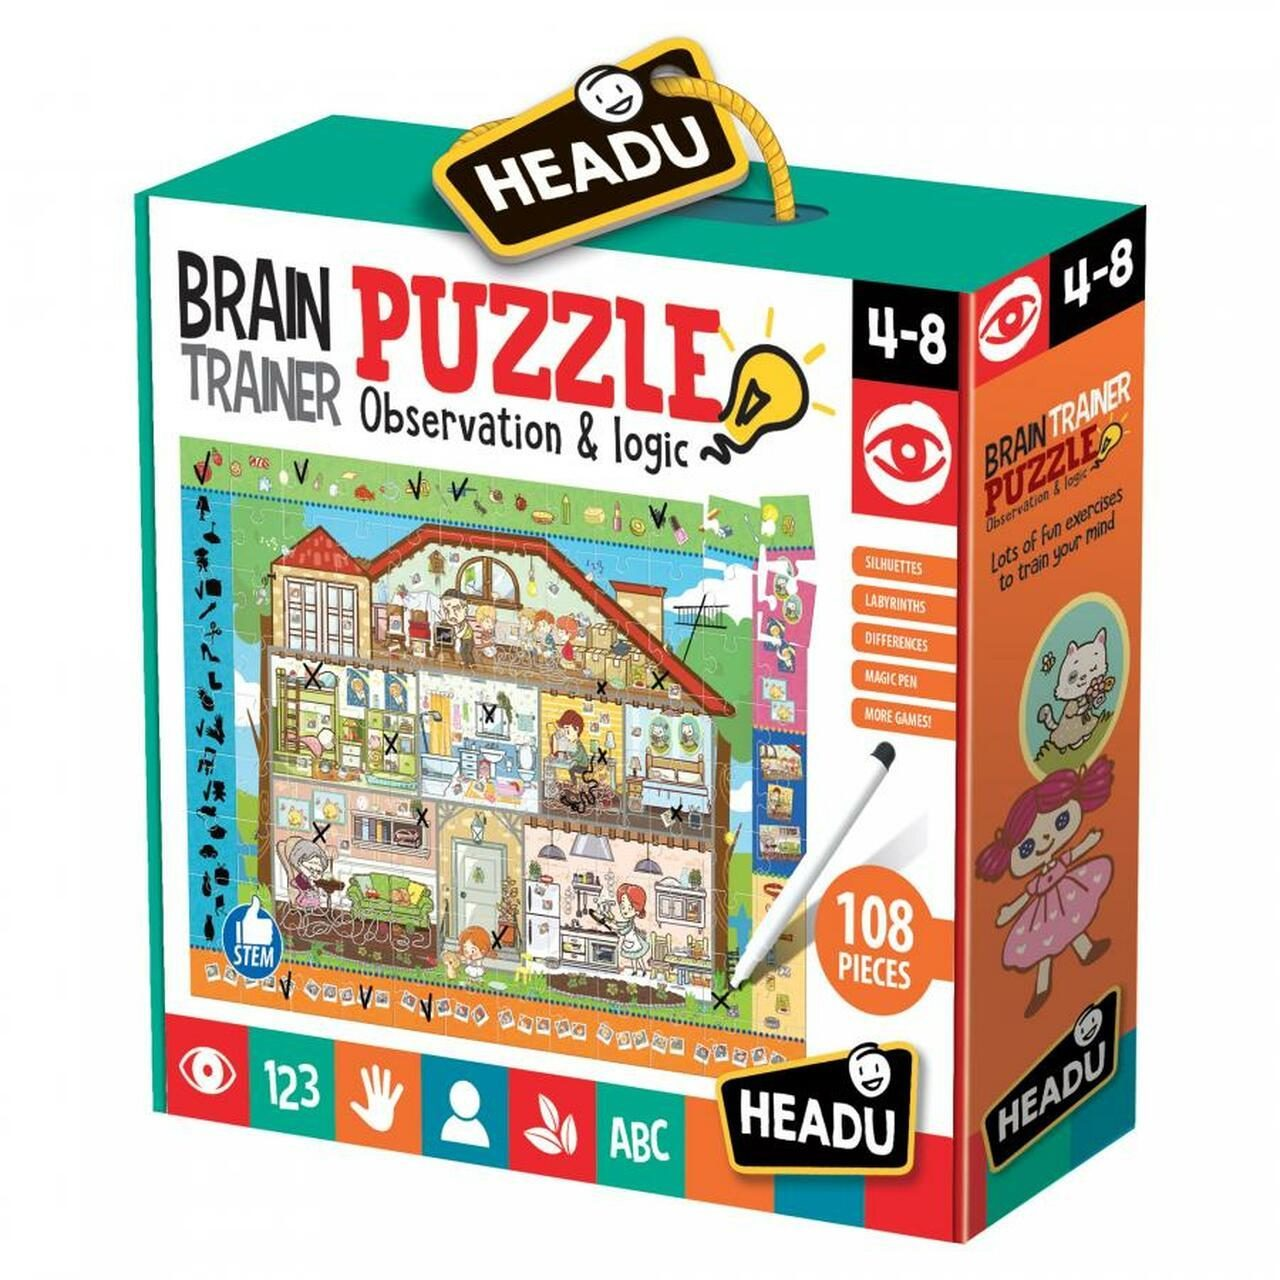 Headu Brain Trainer Puzzle 4-8 yrs Puzzles | First Class Office Online Store